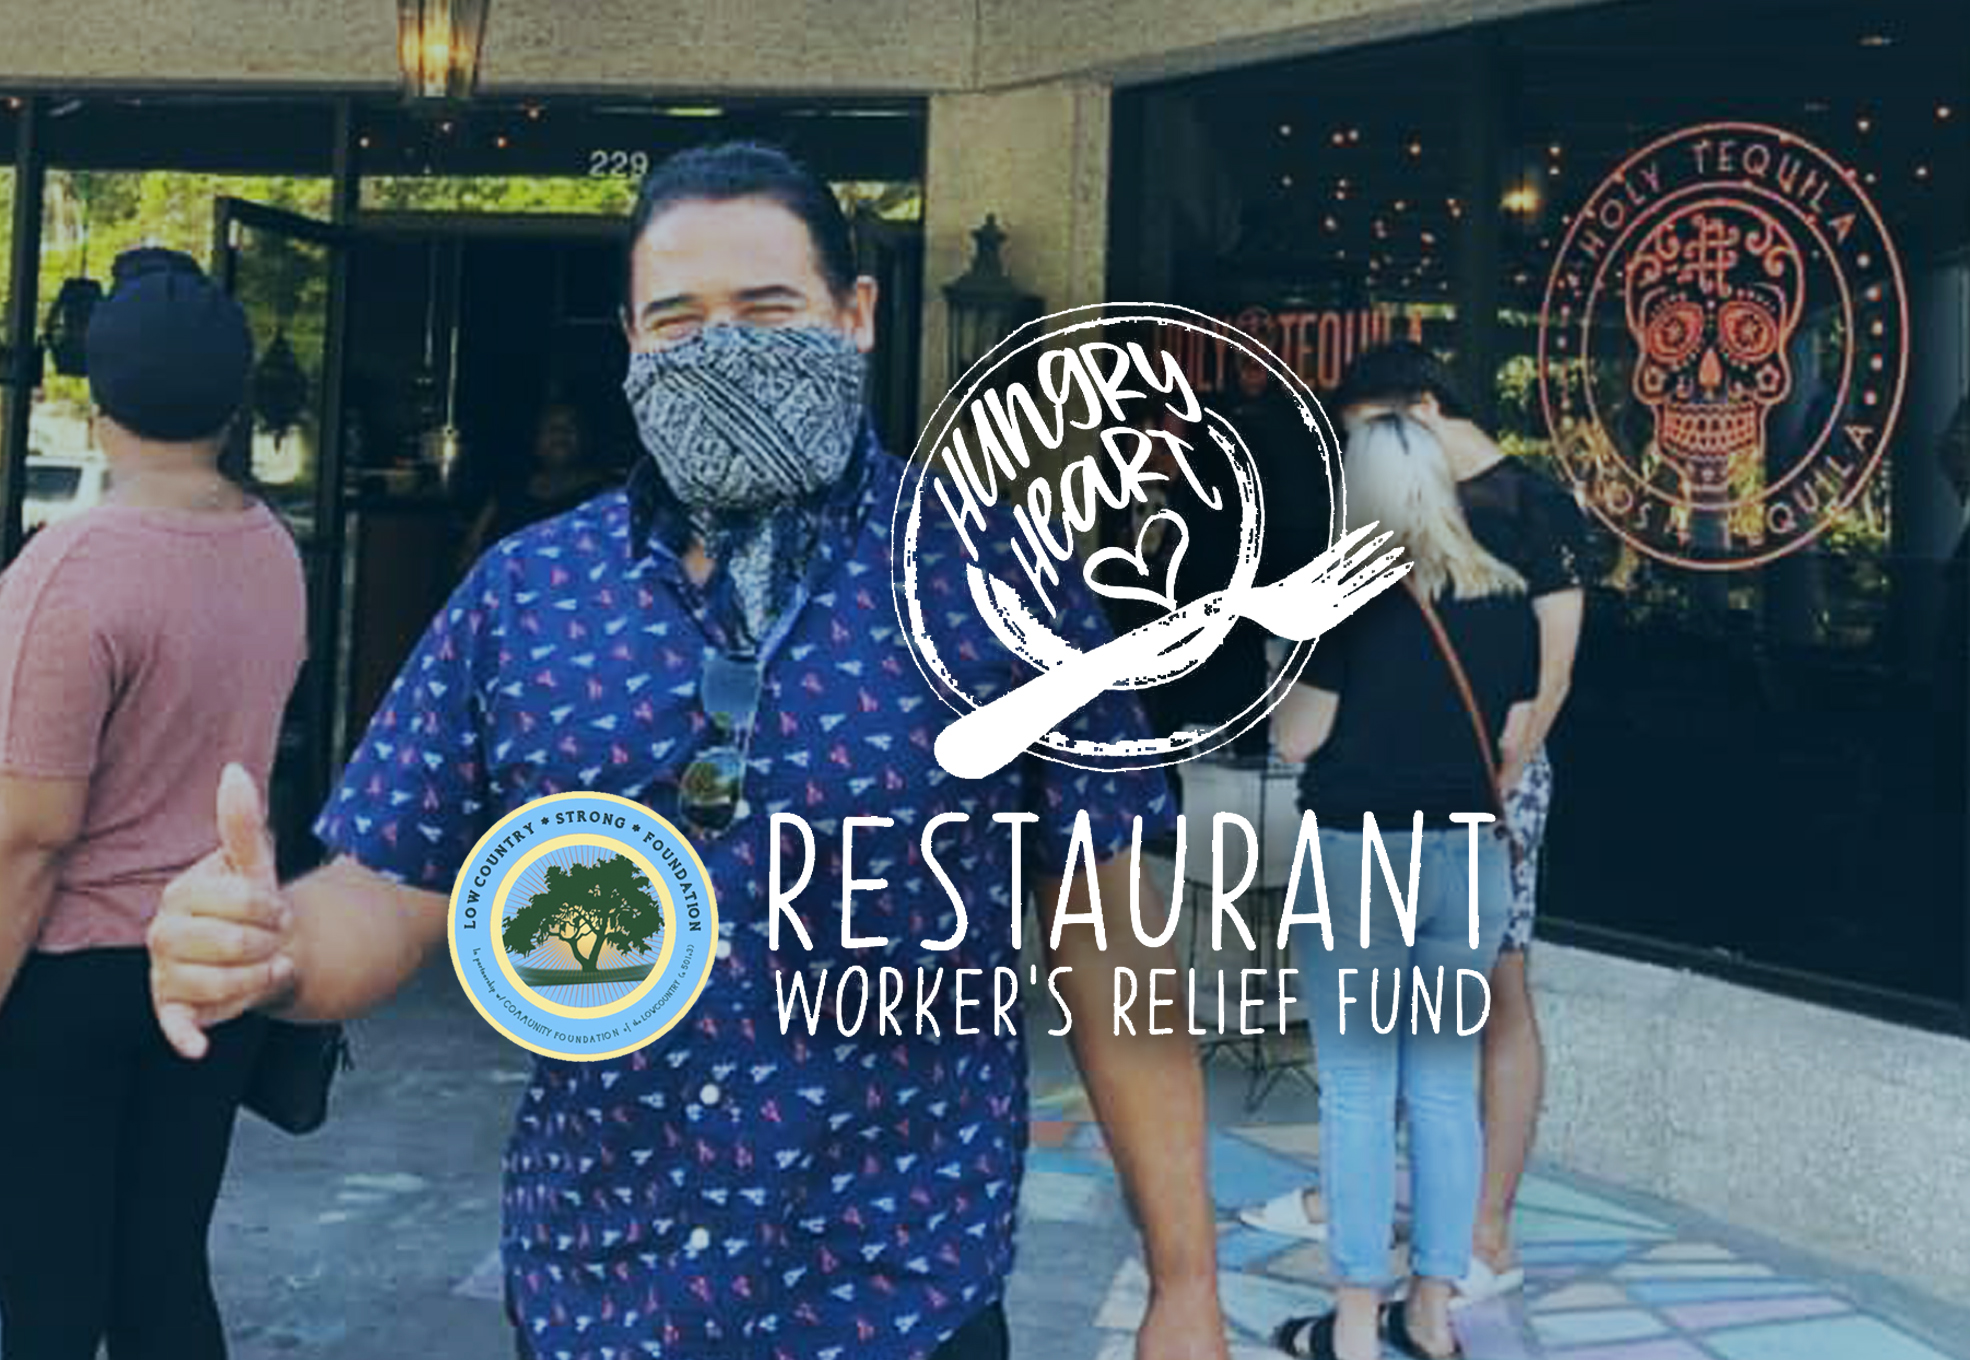 Hungry Heart fund is helping to feed displaced hospitality workers throughout the Lowcountry